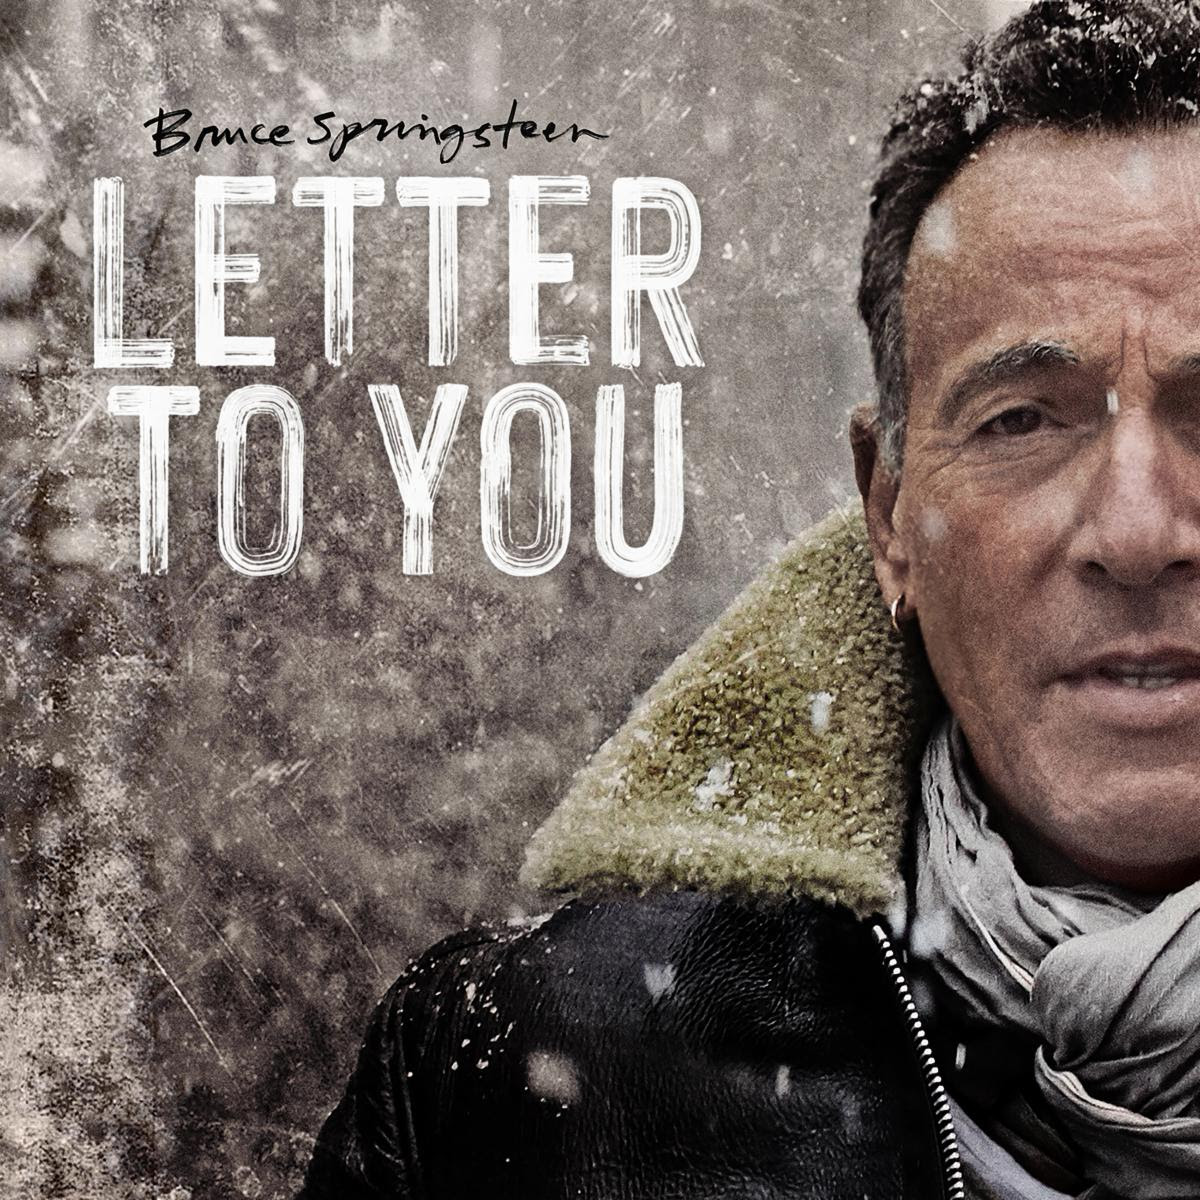 Bruce Springsteen Letter to You artwork